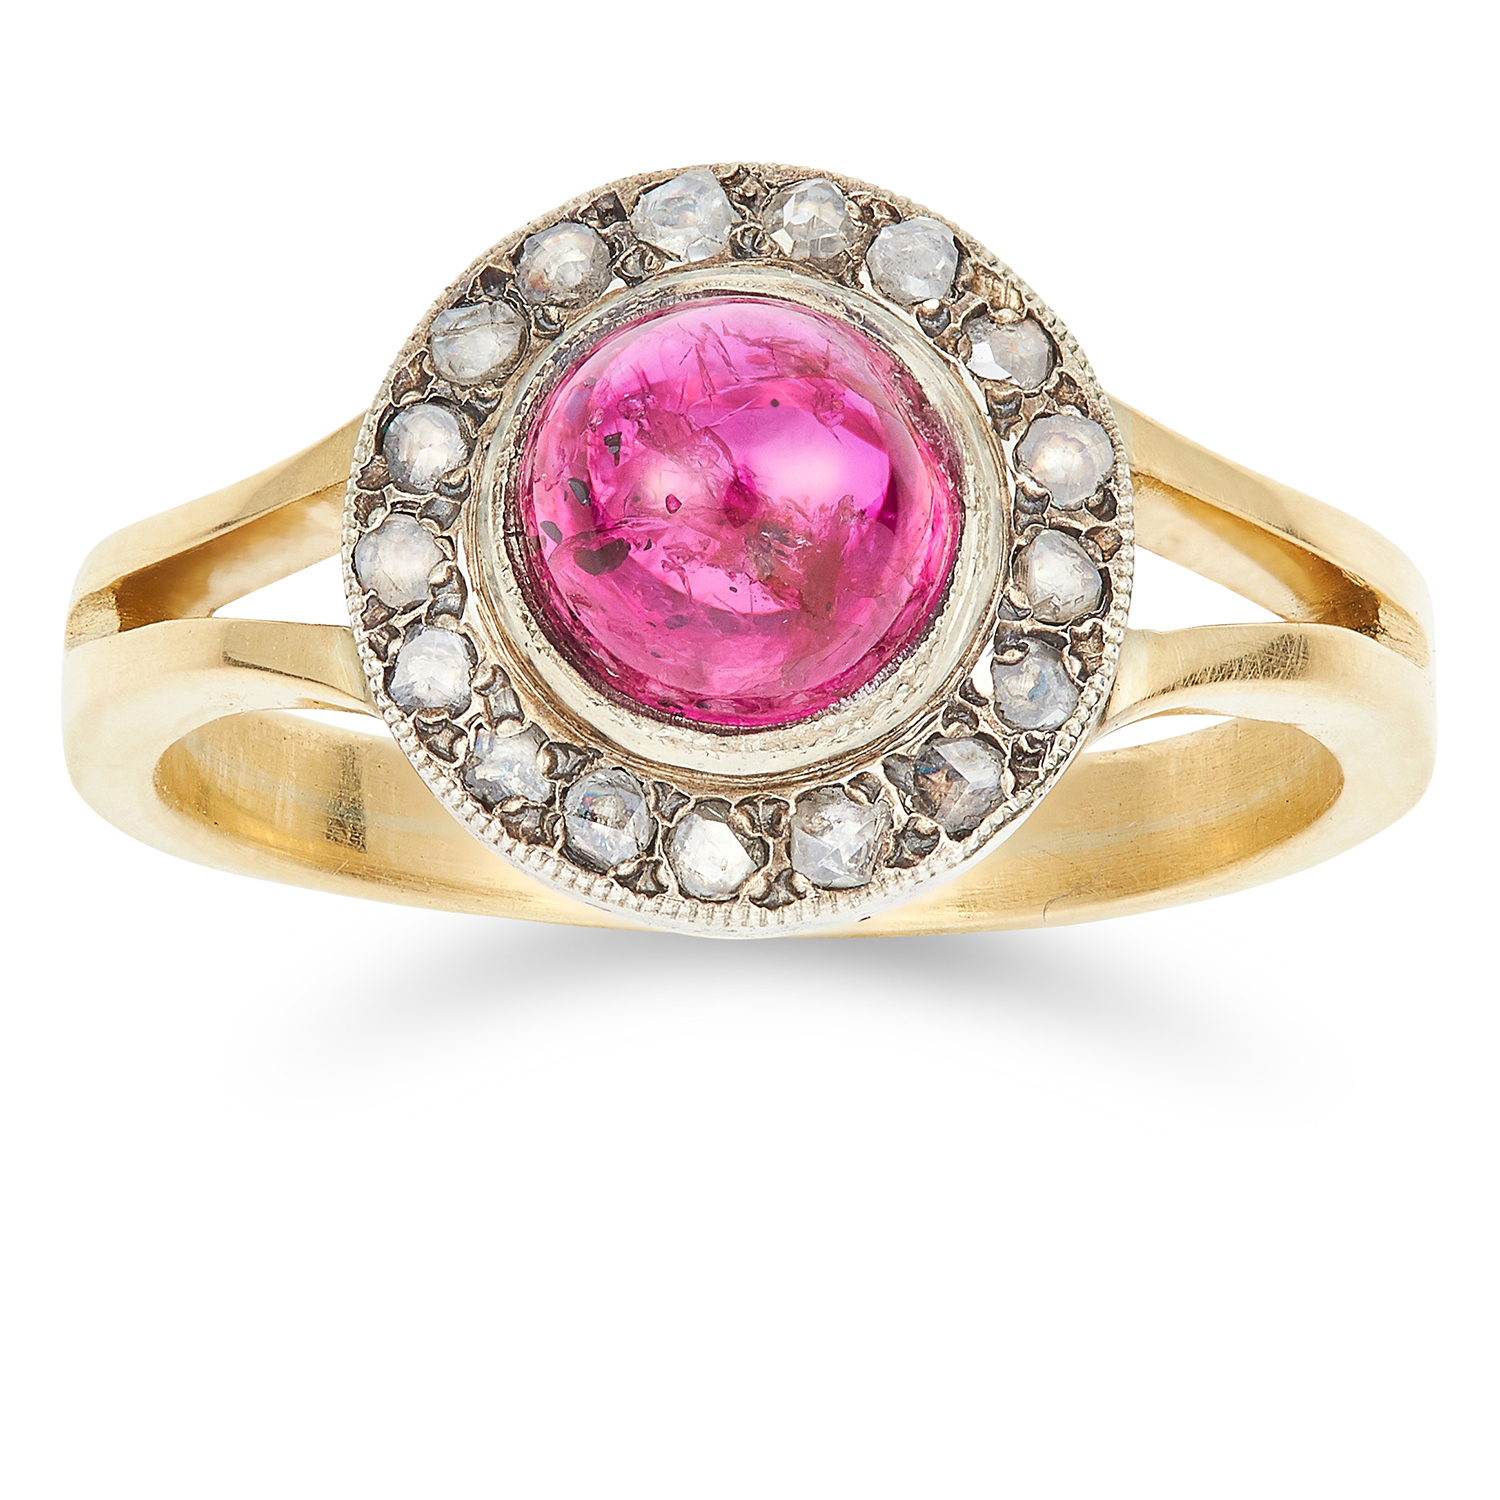 UNHEATED 1.92 CARAT RUBY AND DIAMOND RING set with a circular cabochon ruby and rose cut diamonds,